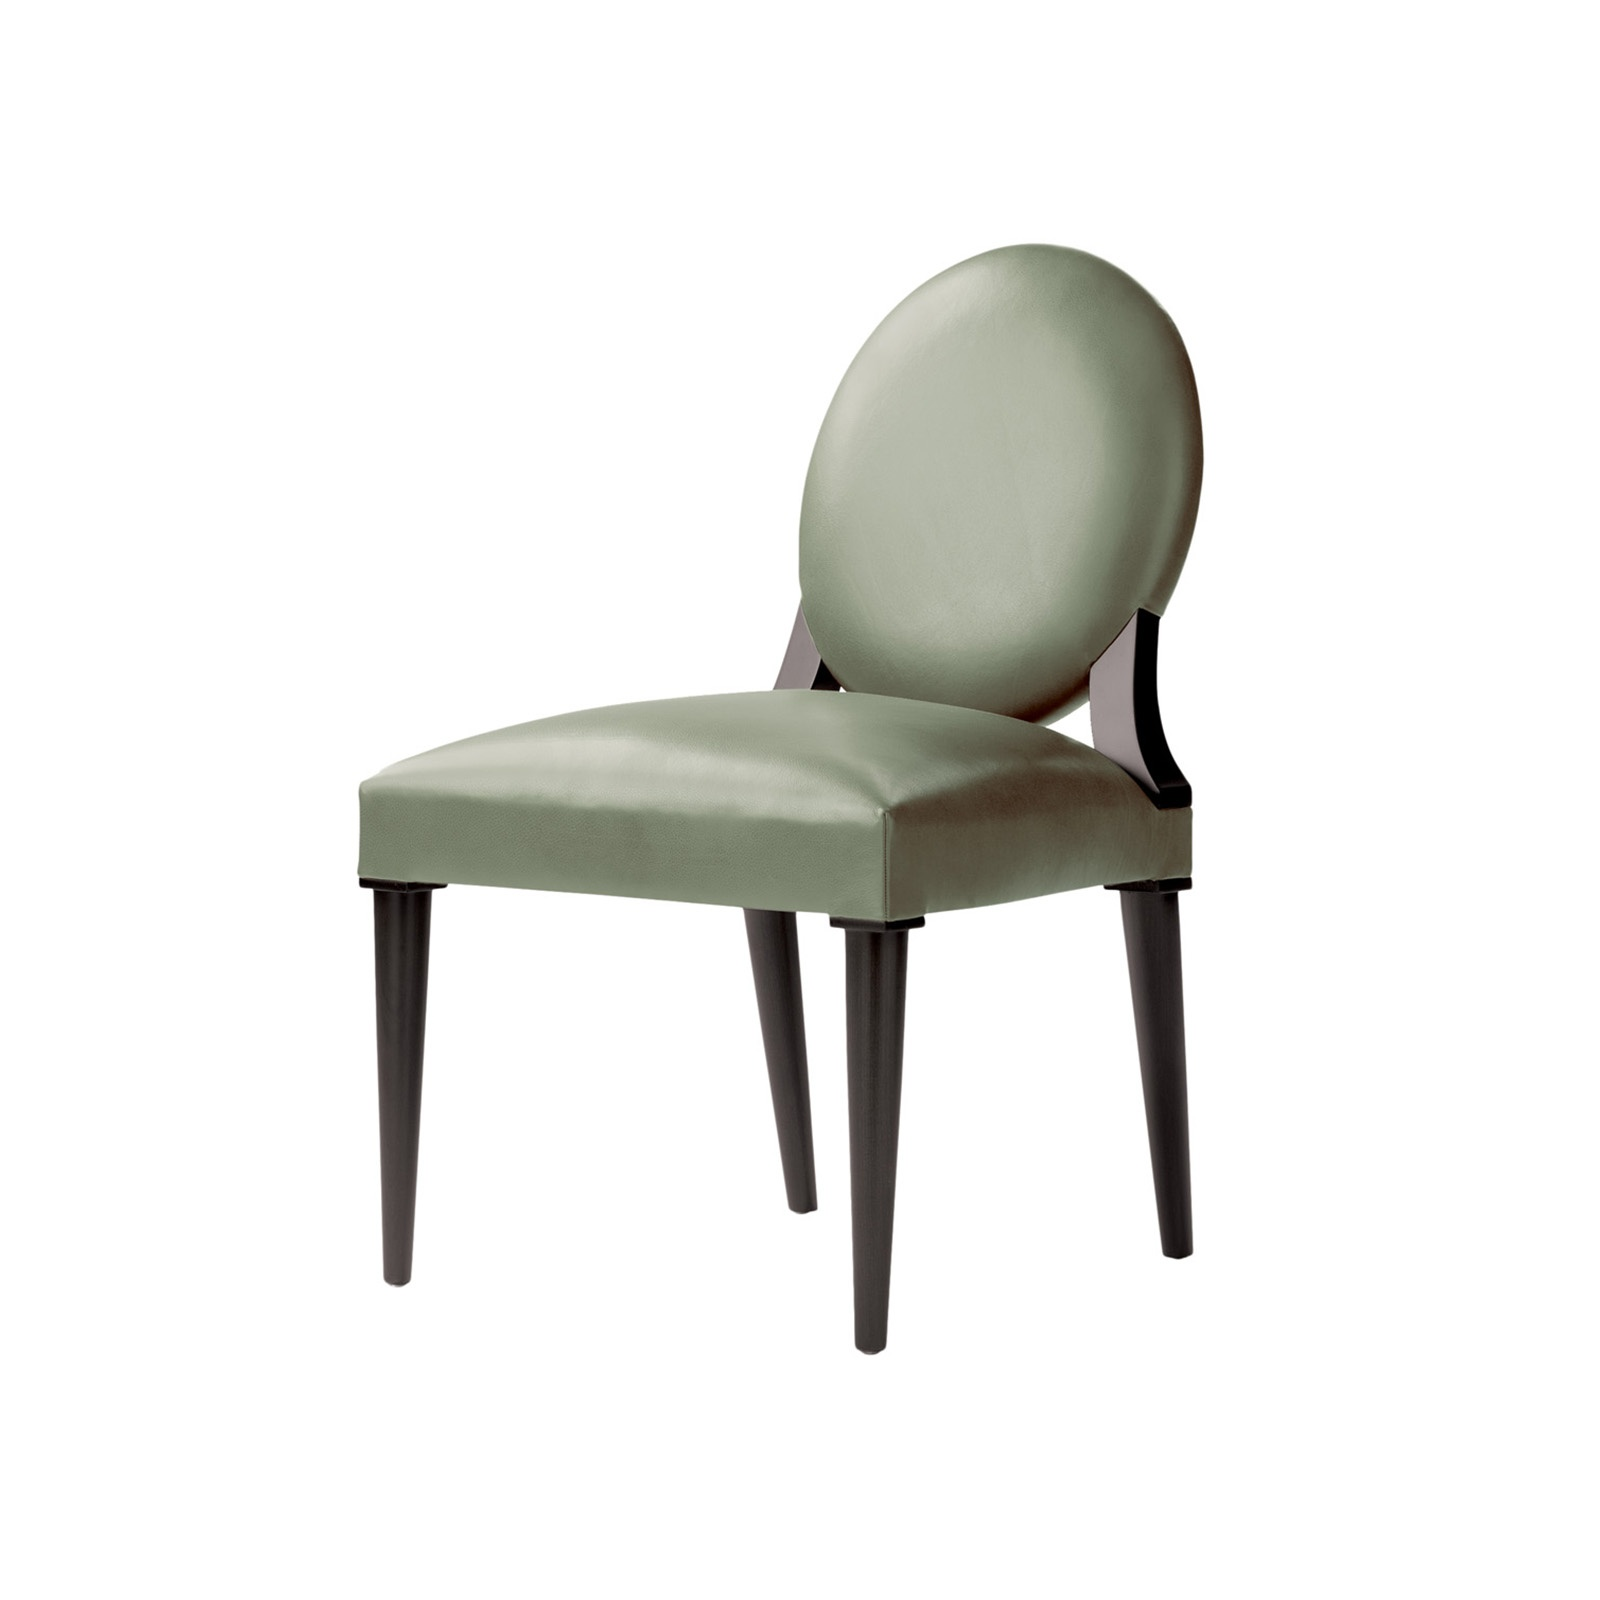 изображение Стул Confidential Side Chair в Decoconcept